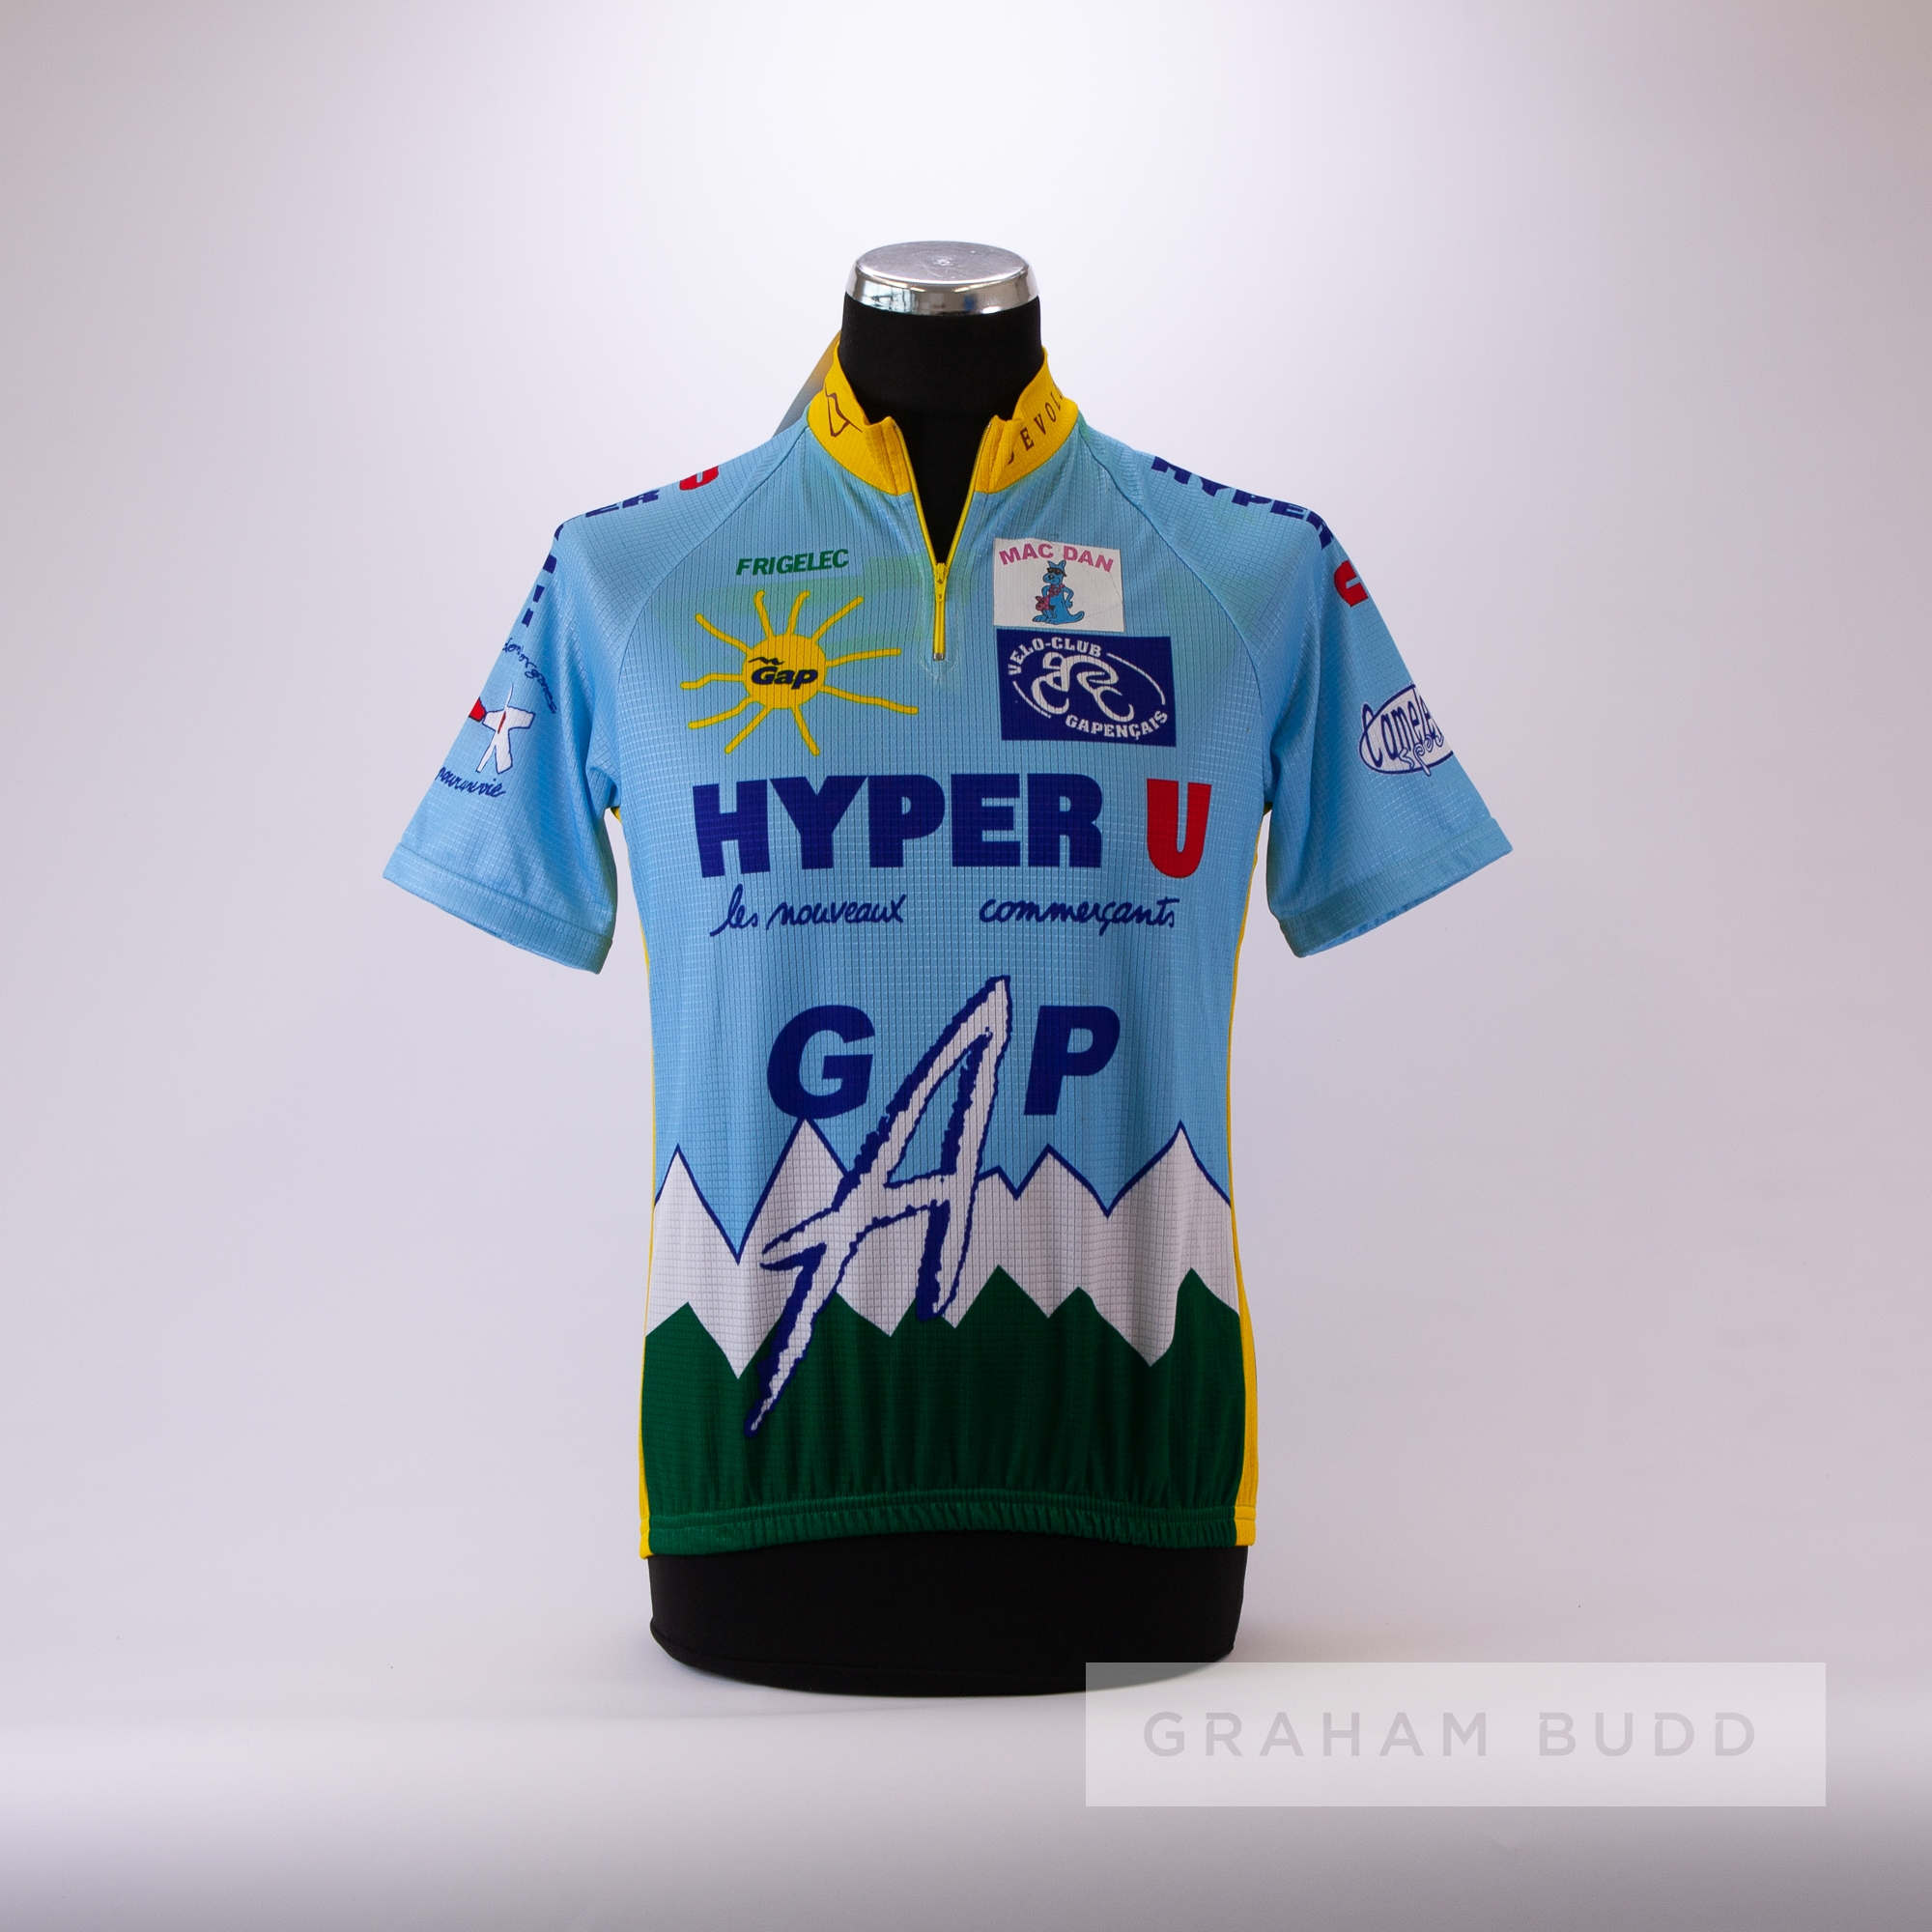 1991 blue, white, yellow and green French Hyper U Gap Cycling race jersey, scarce, polyester - Image 3 of 4